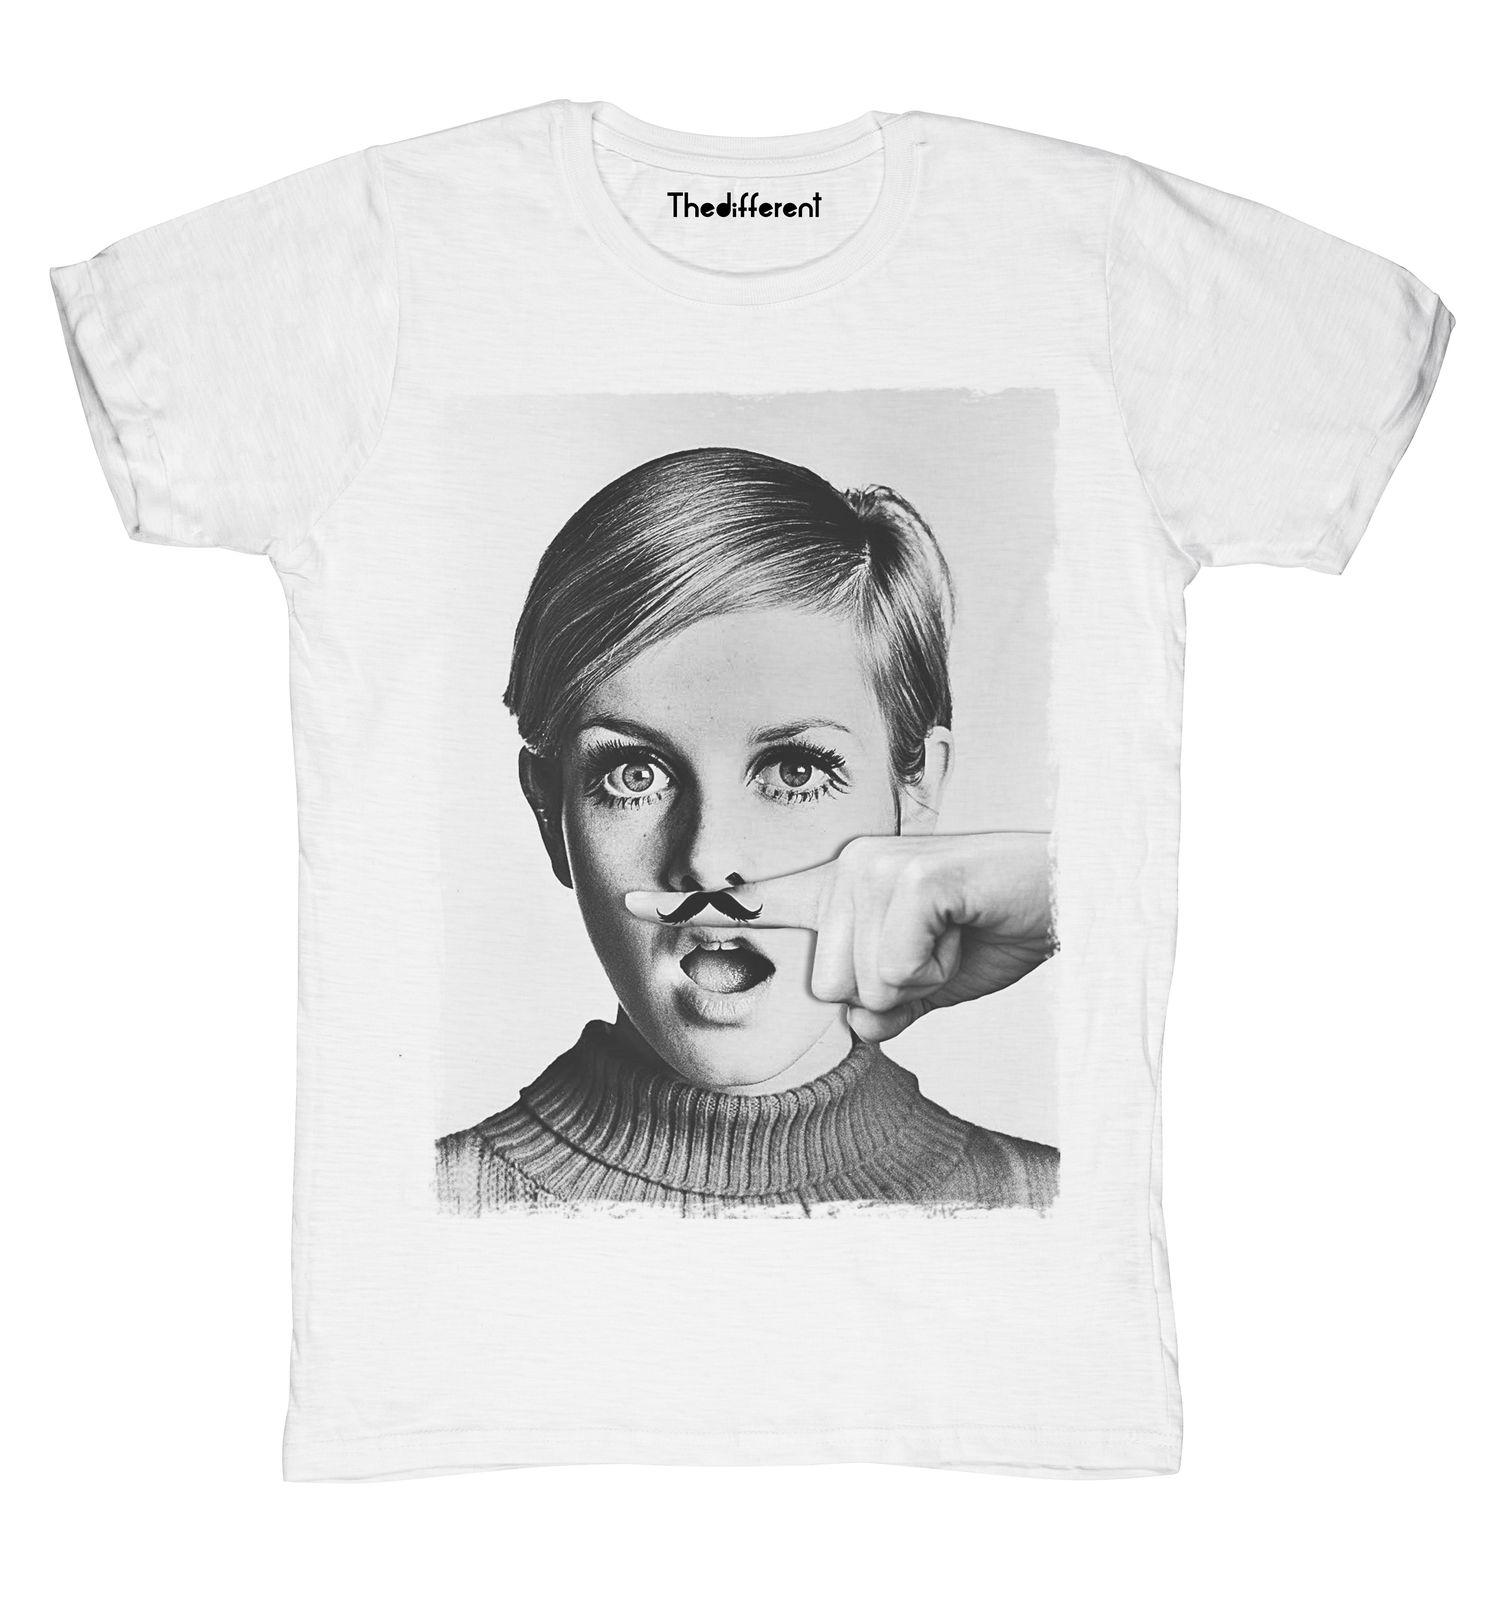 95da1195a8e New T Shirt Blaze Man Funny Twiggy Mustache Gift Idea Cartoon T Shirt Men  Unisex New Fashion Tshirt Funny Tops T Shirt Slogan Daily T Shirts From ...